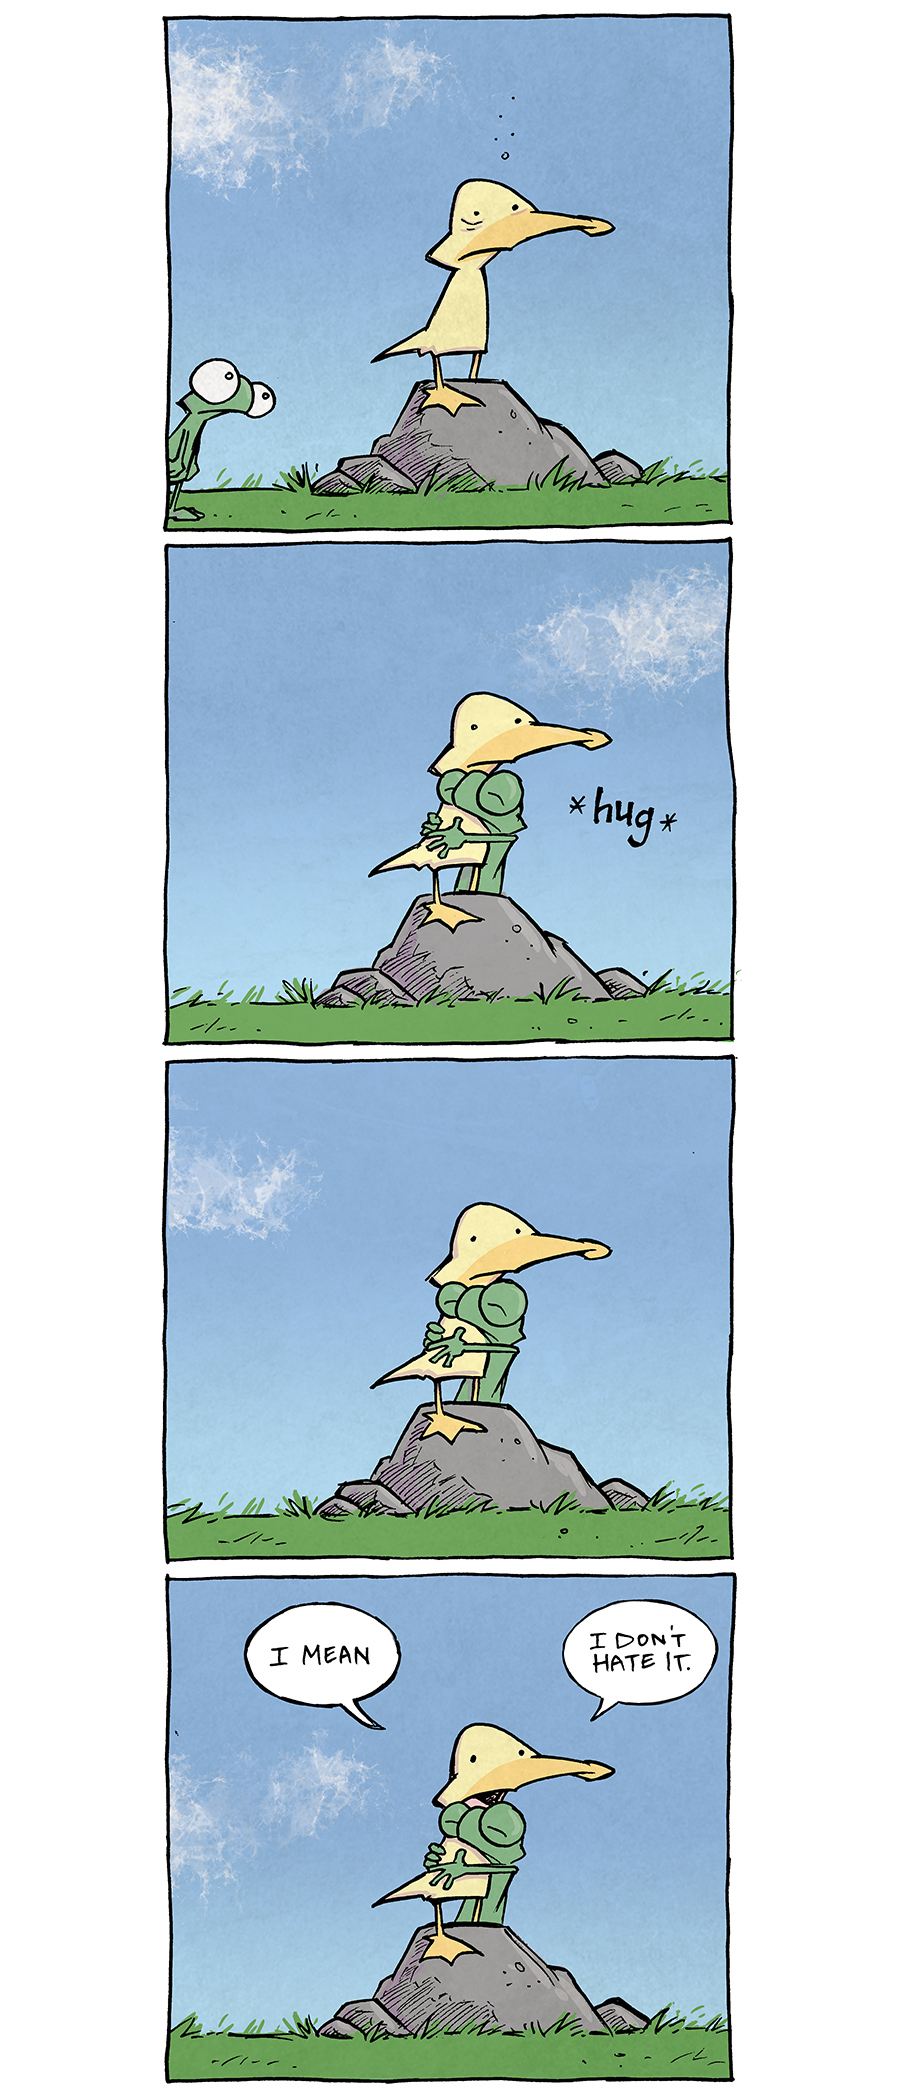 strip for October / 29 / 2020 - Reply to Your Previous Announcement